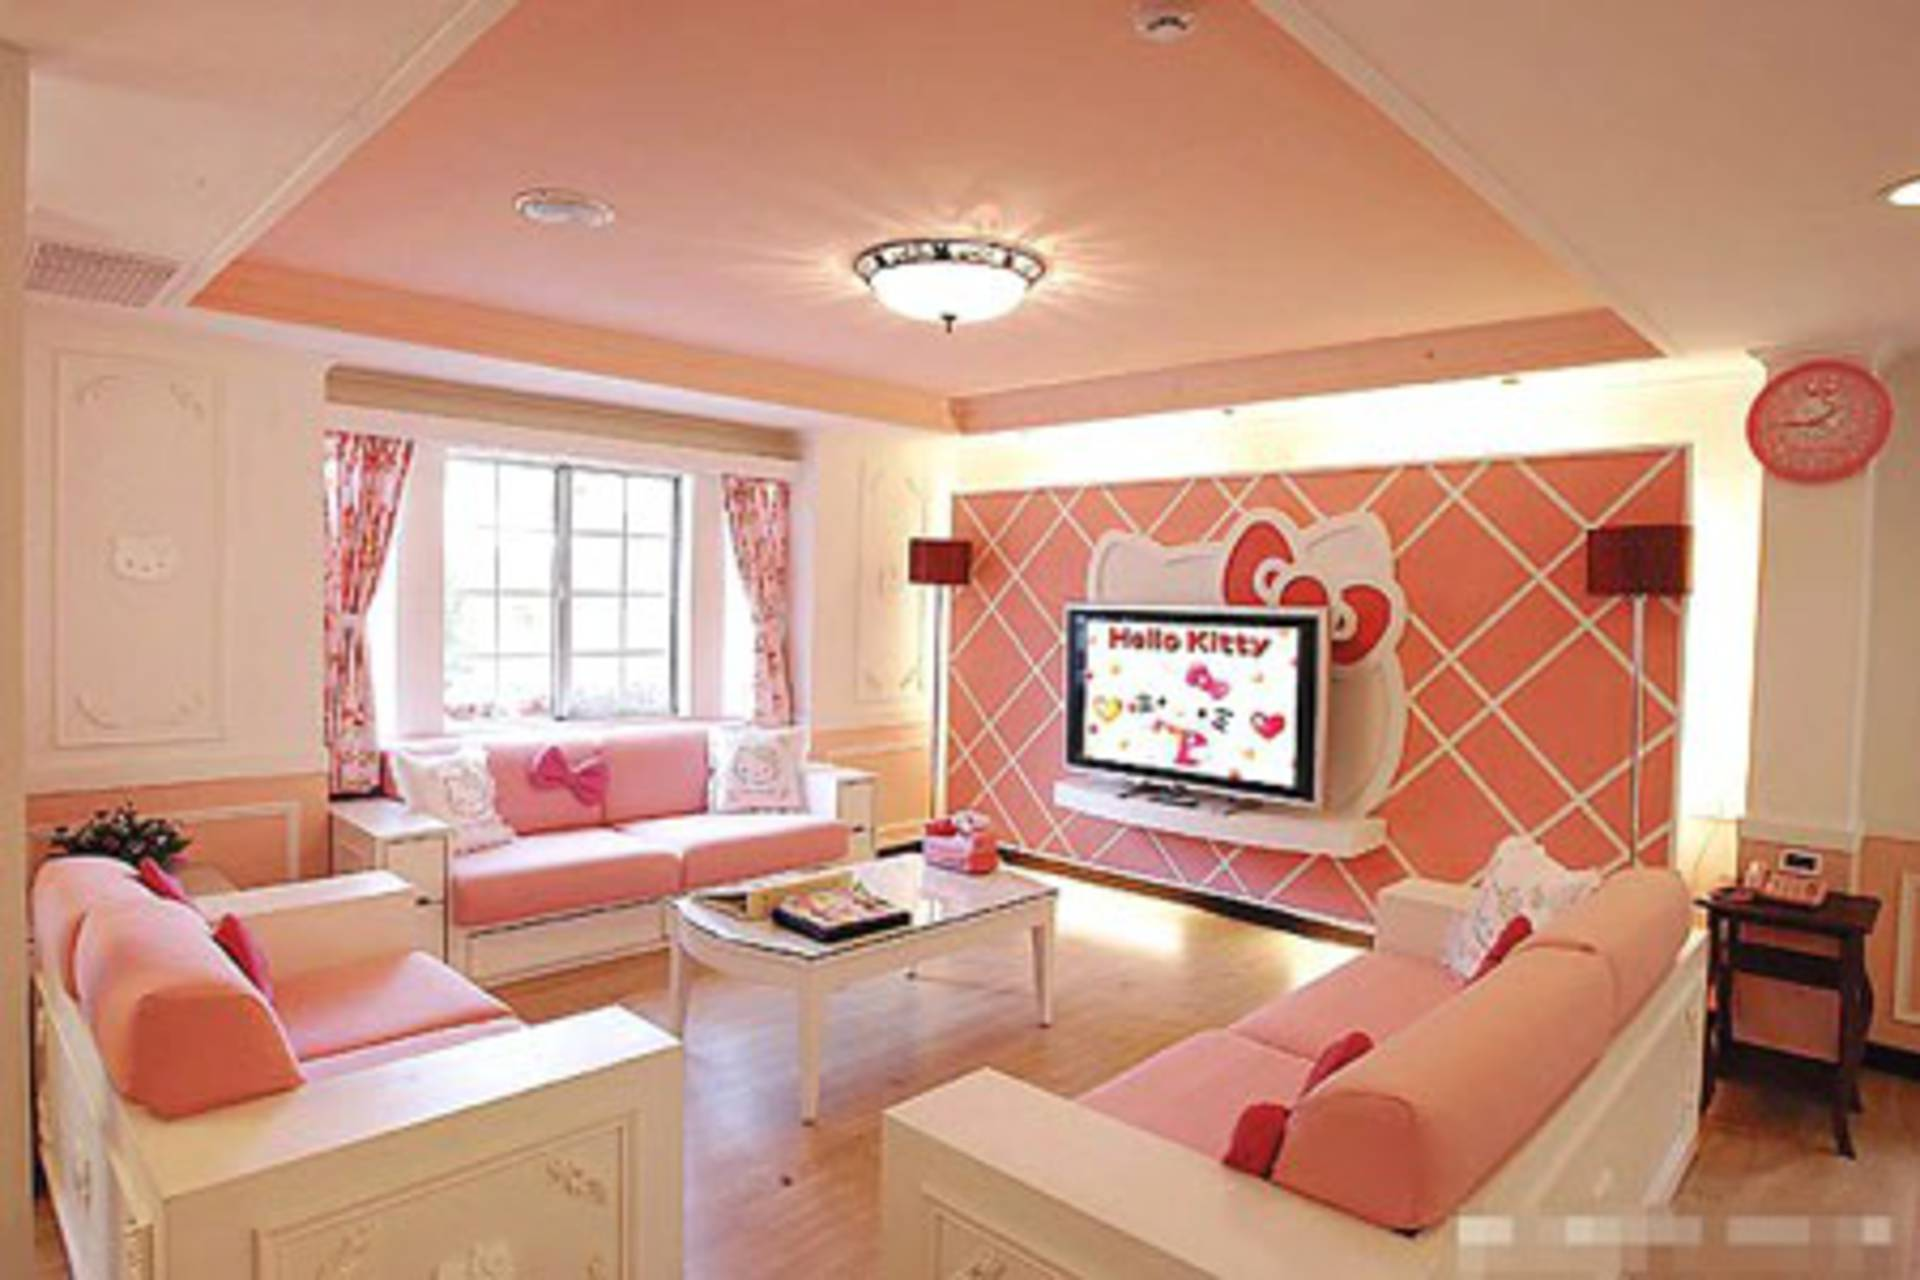 The House Of A Dream Coloured Pink Hello Kitty Theme